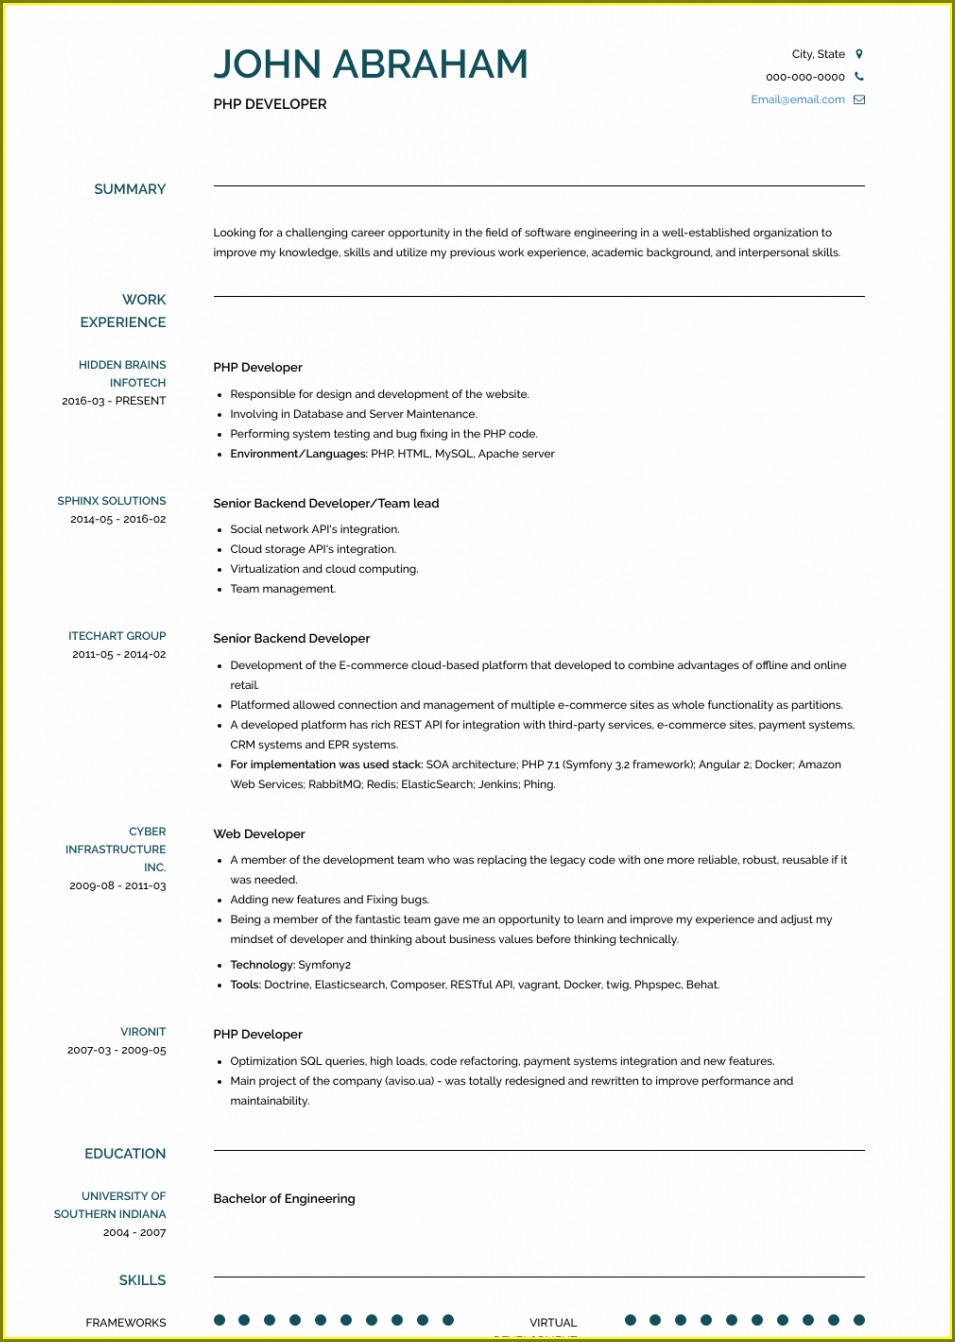 Resume Format For Accountant In Word Format Download Free